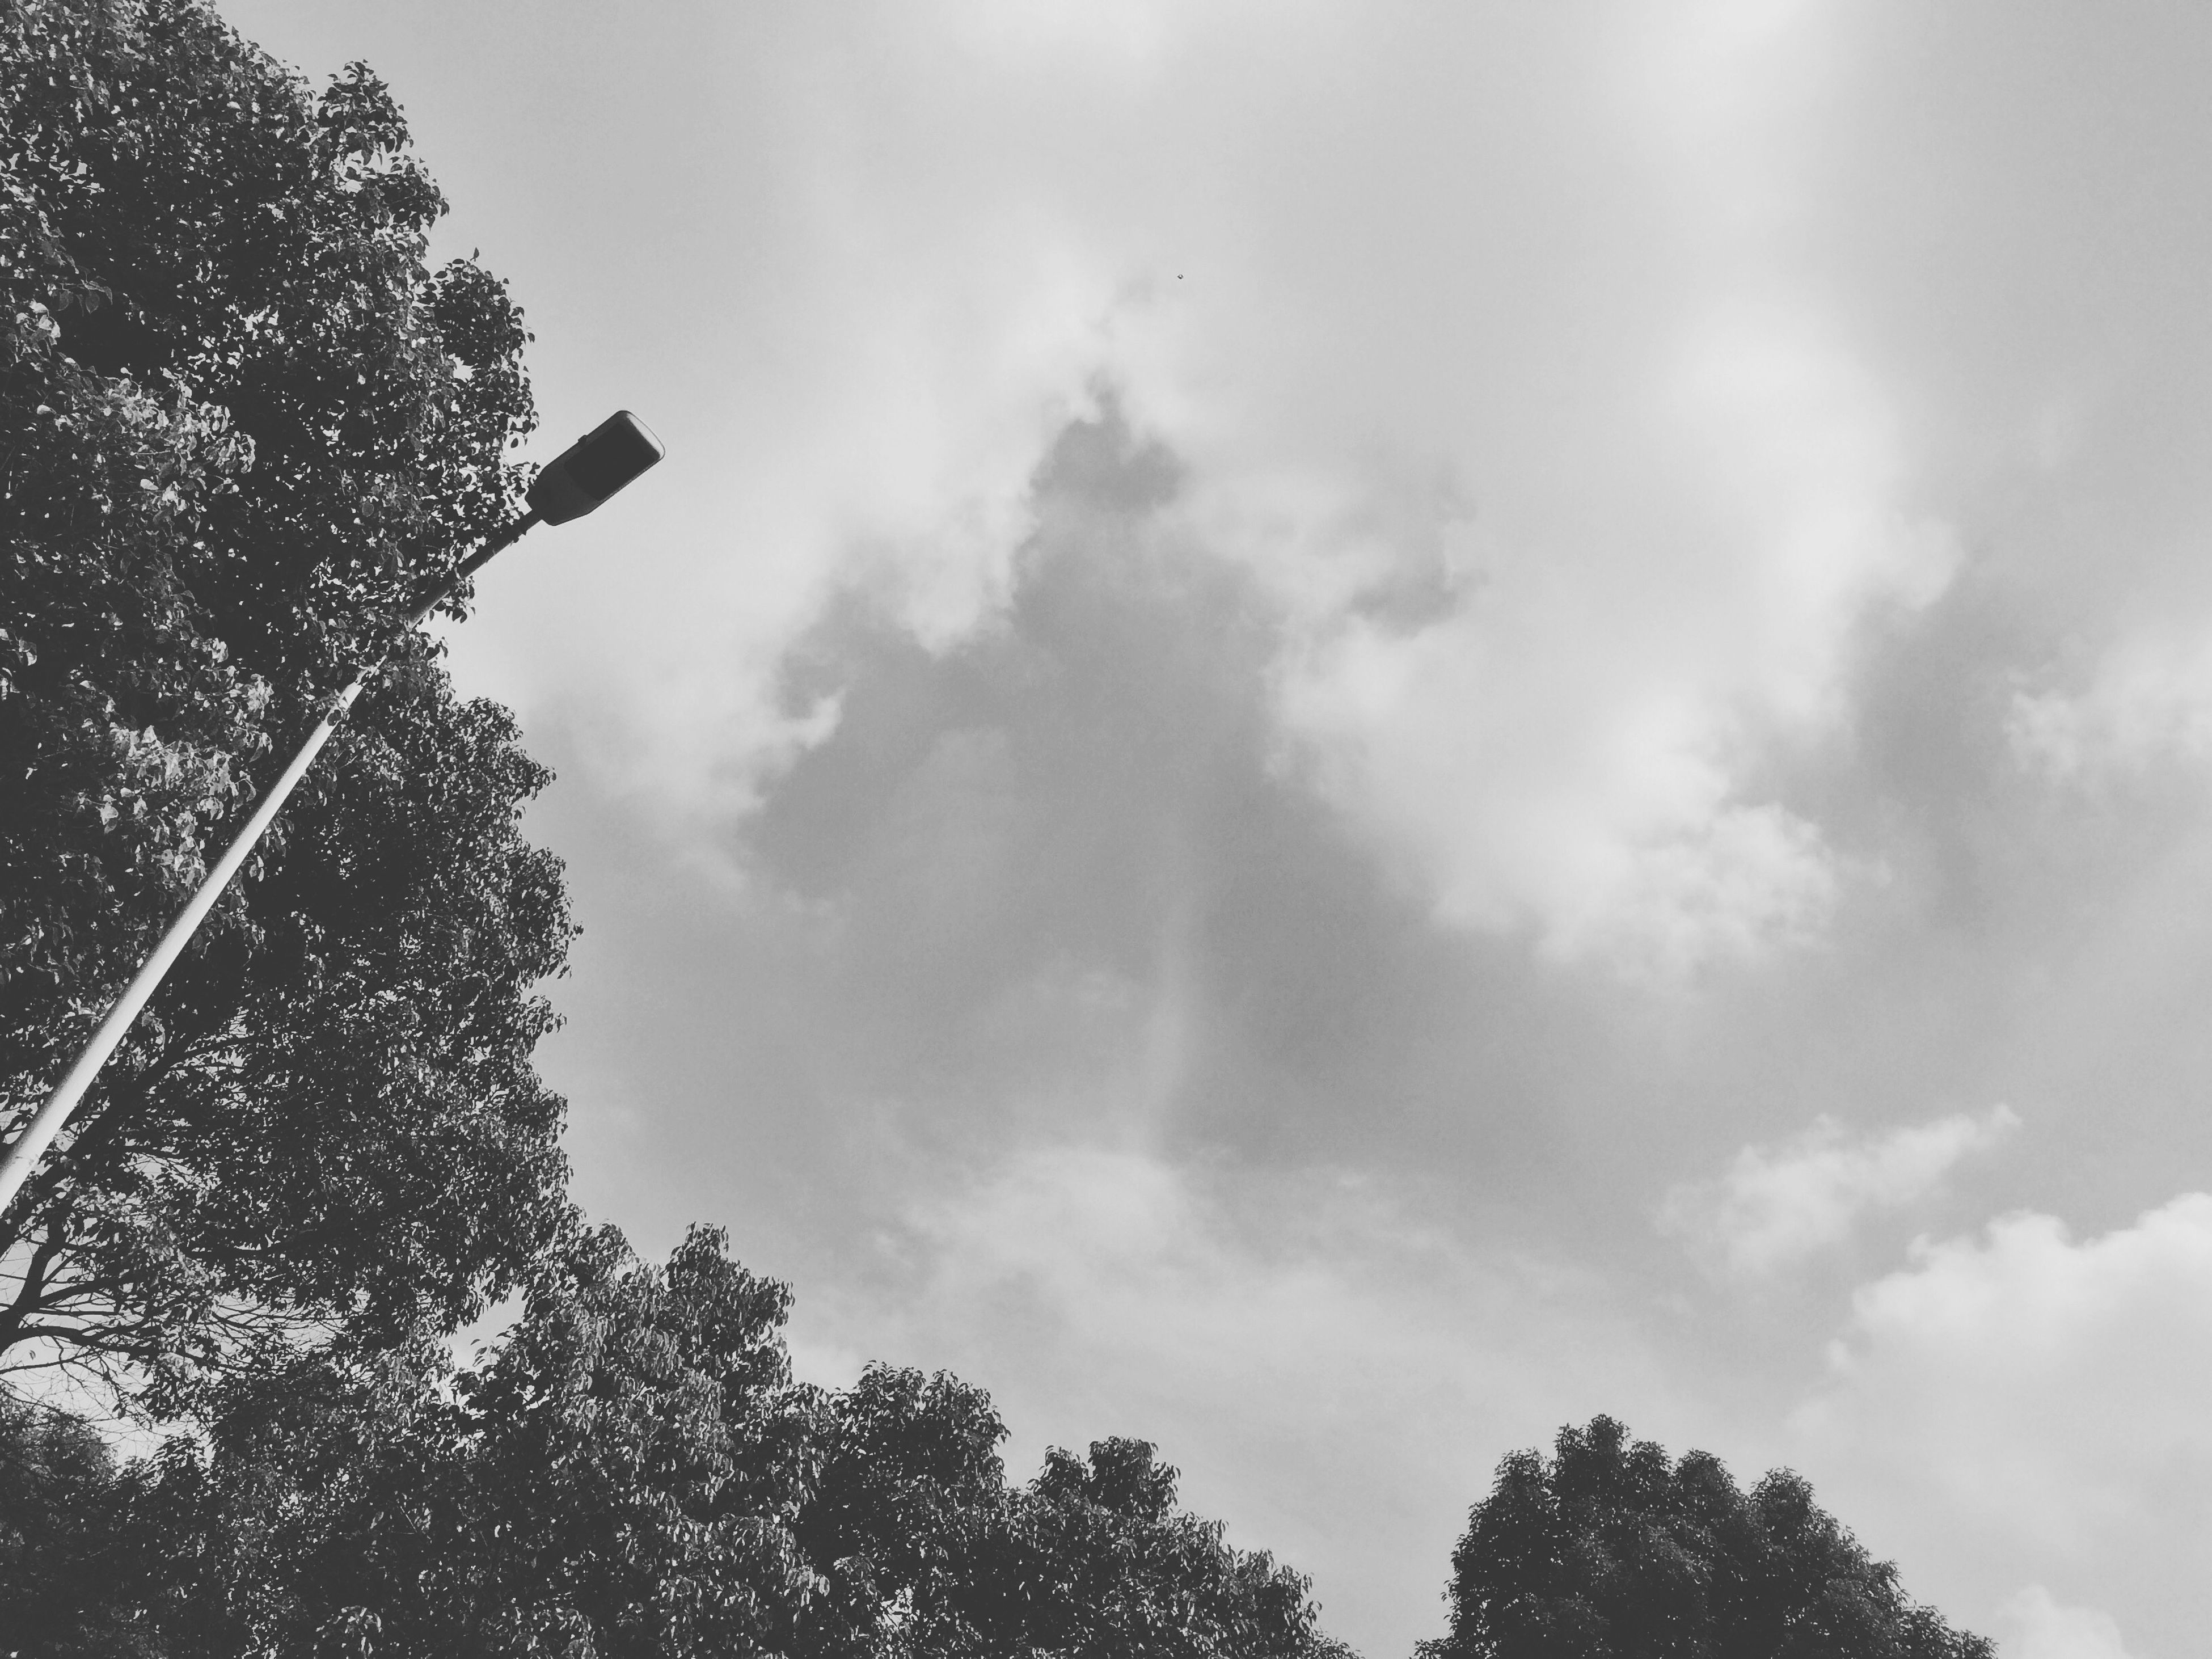 low angle view, sky, tree, cloud - sky, street light, cloudy, silhouette, cloud, nature, flying, bird, high section, outdoors, day, no people, growth, lighting equipment, beauty in nature, branch, animal themes